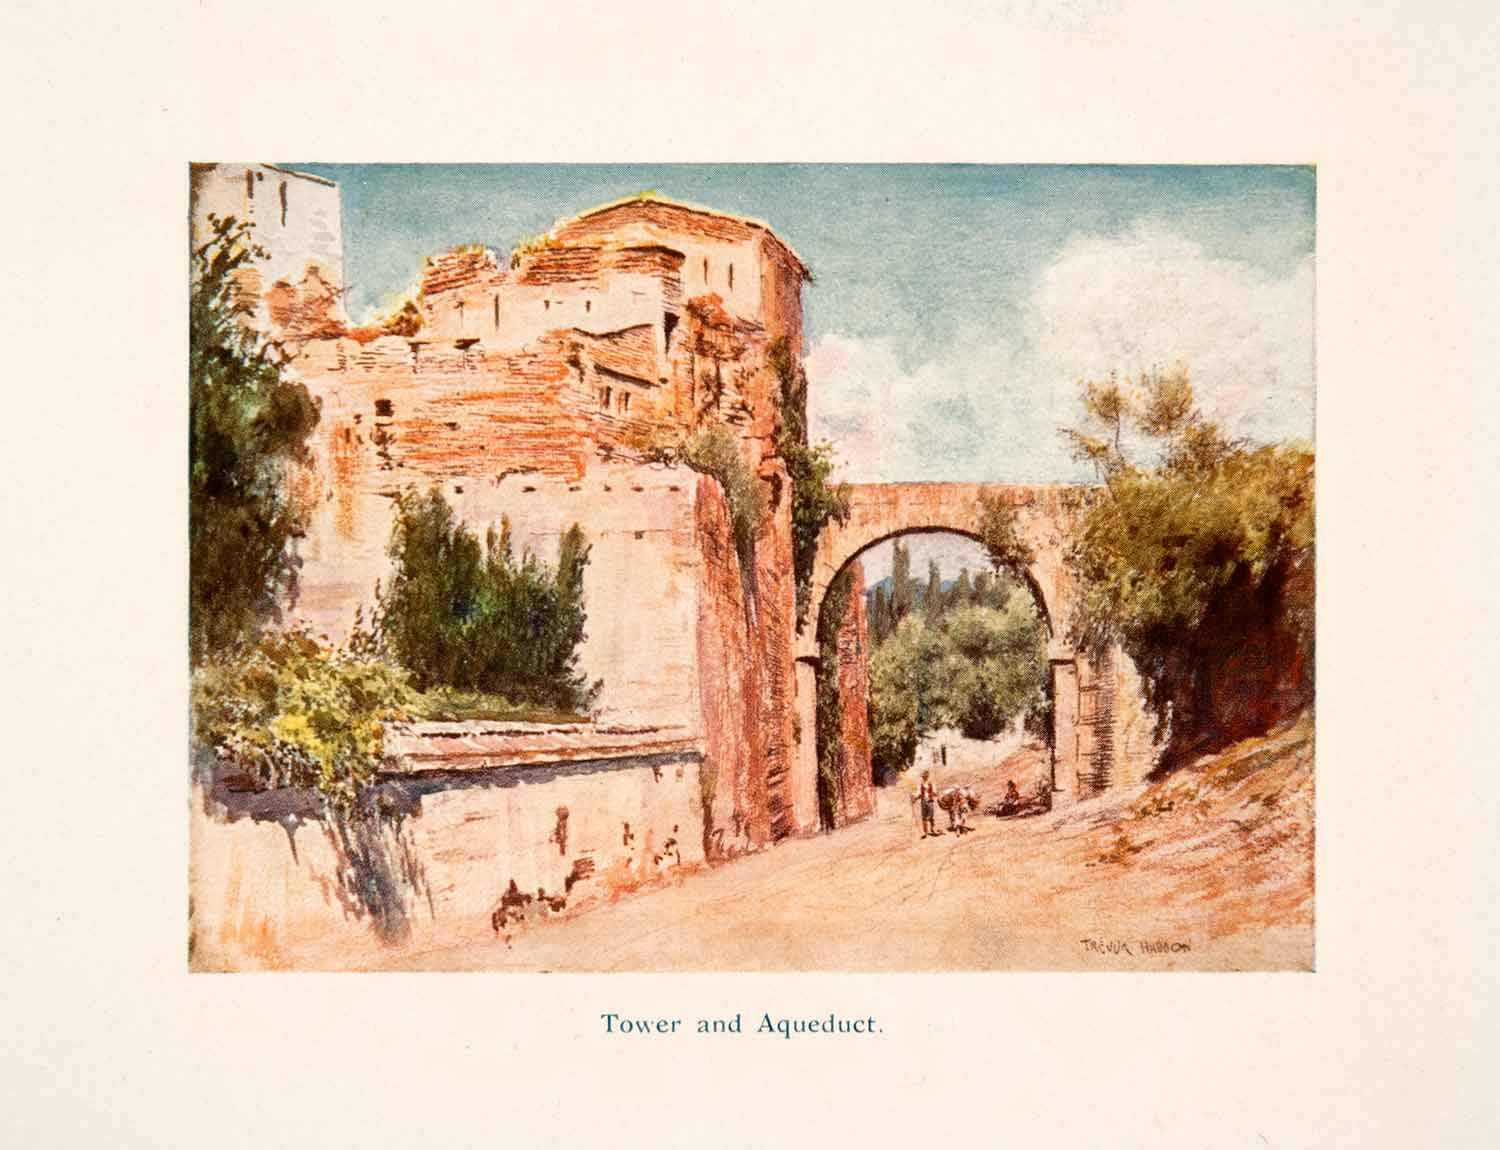 1908 Color Print Illustration Tower Aqueduct Alhambra Haddon Granada Spain XGTA4